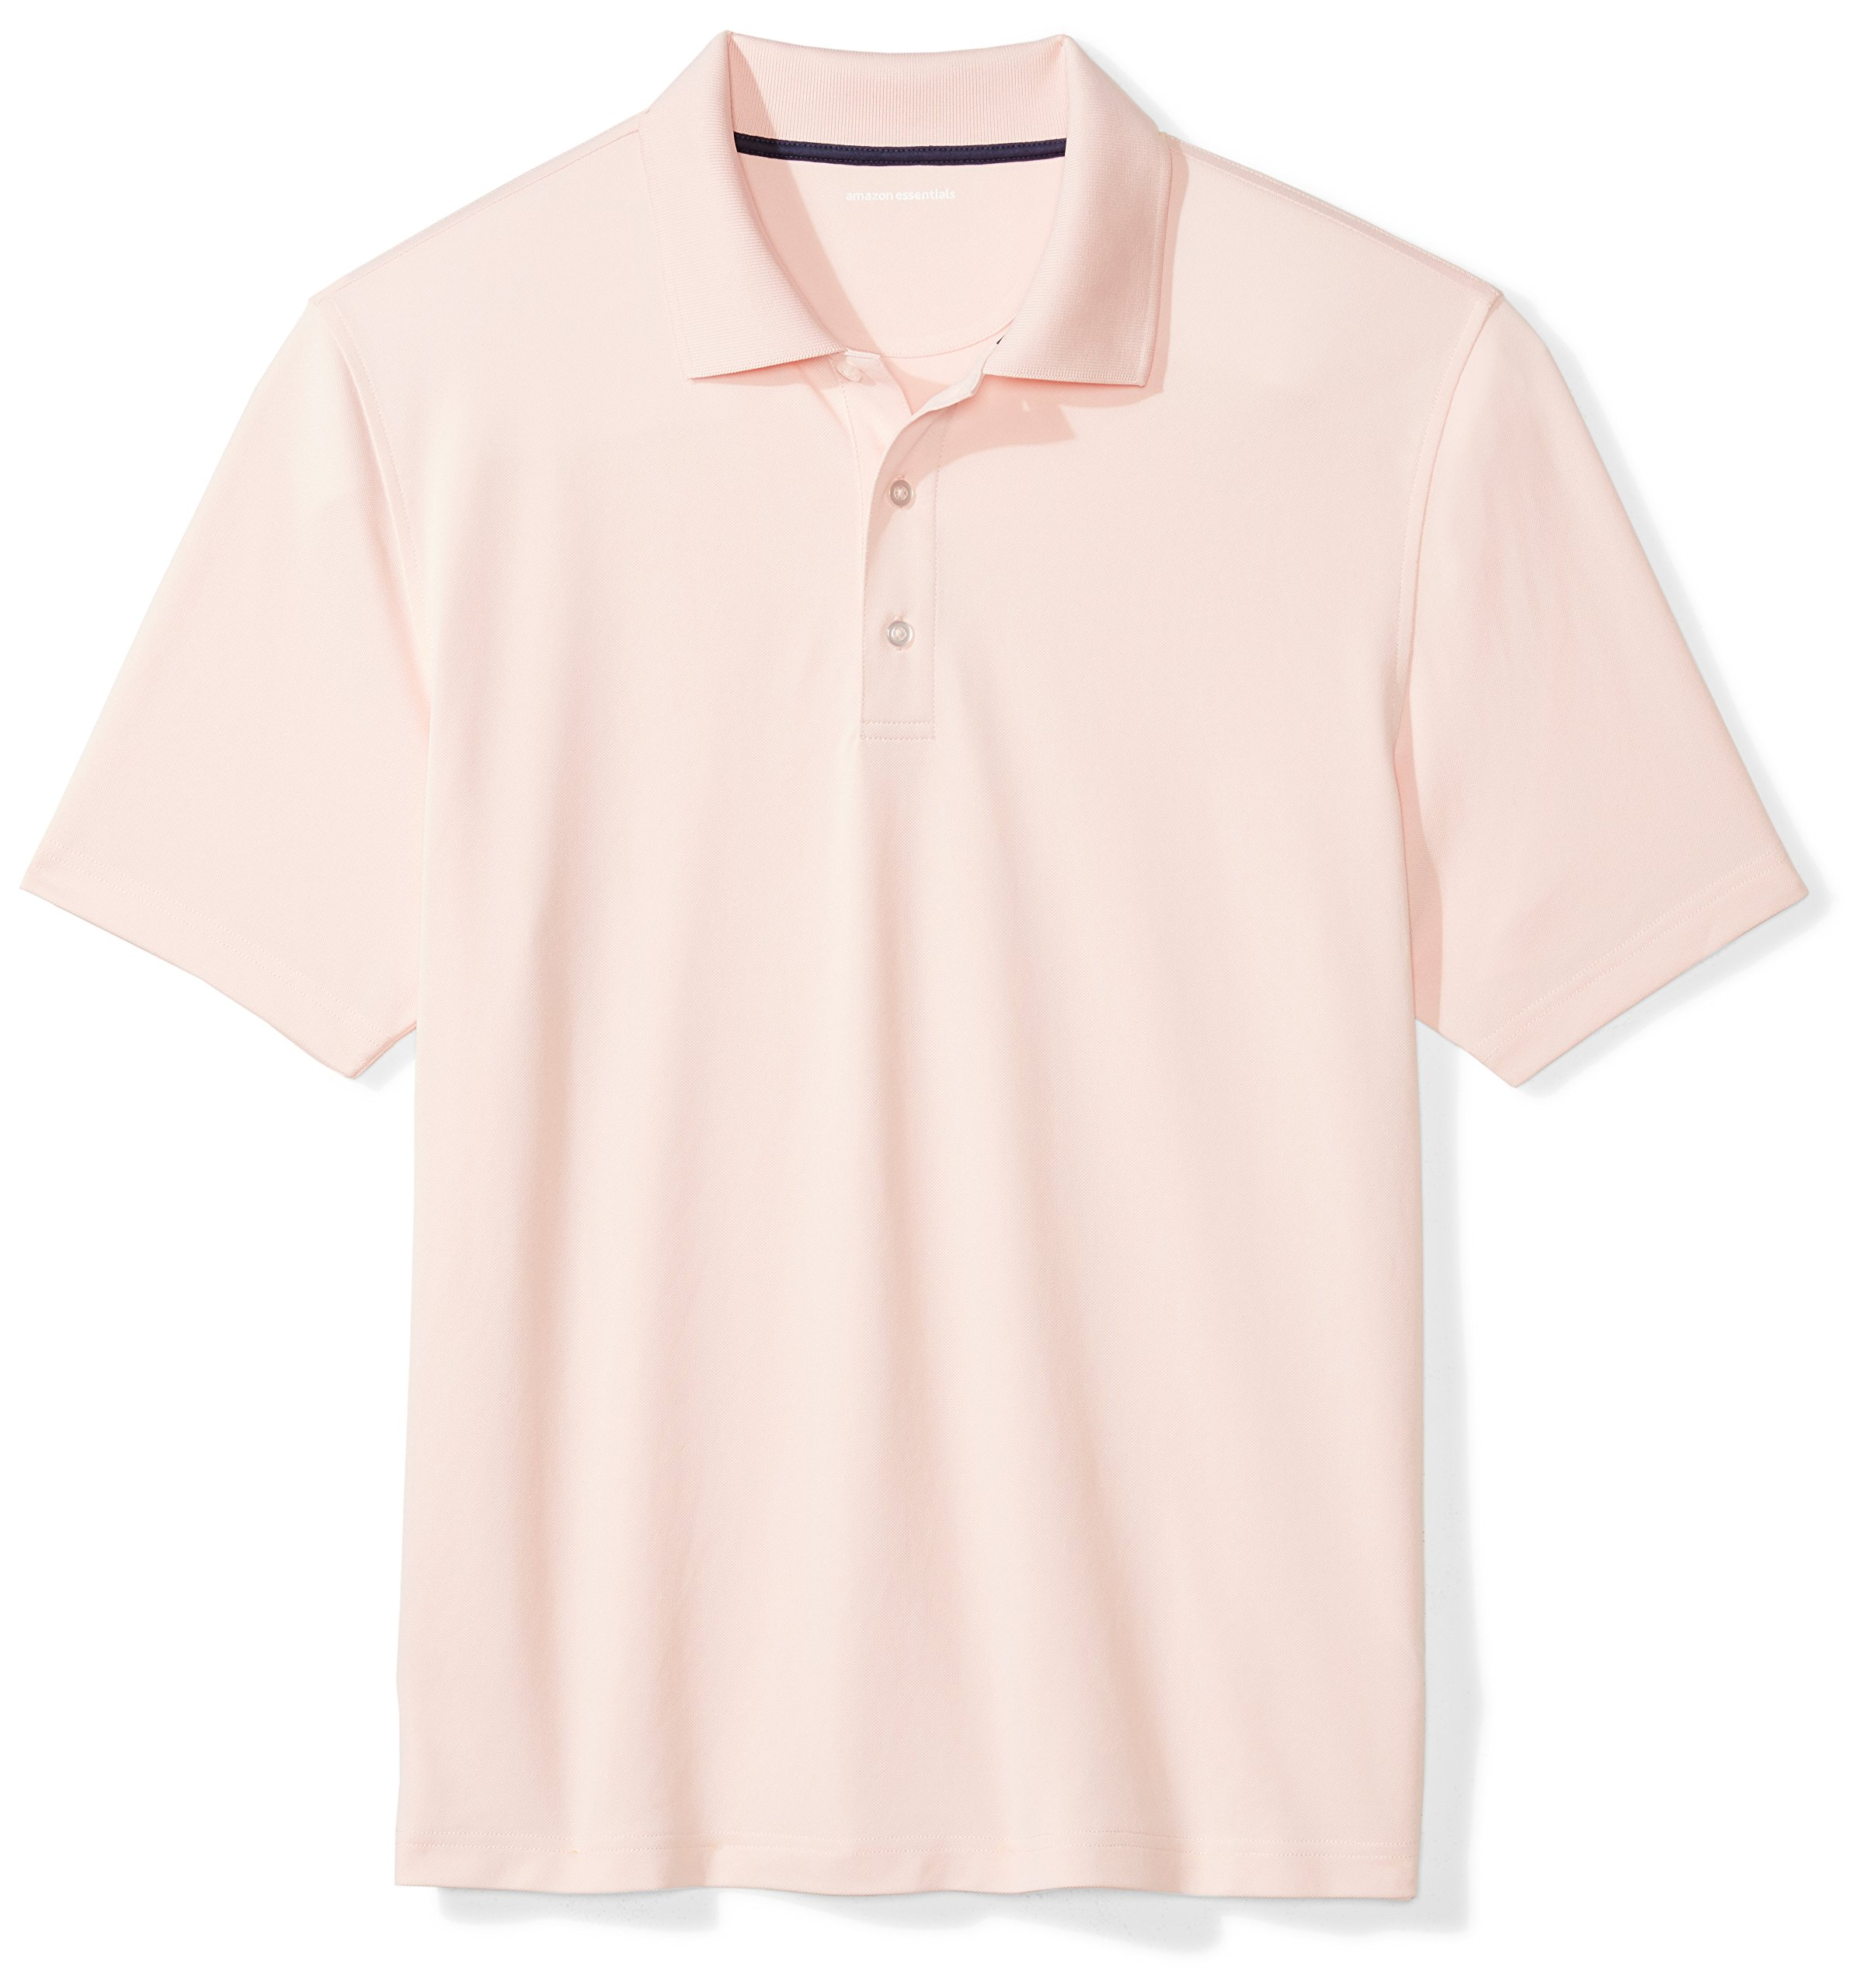 Amazon Essentials Men's Regular-Fit Quick-Dry Golf Polo Shirt, light pink, Large by Amazon Essentials